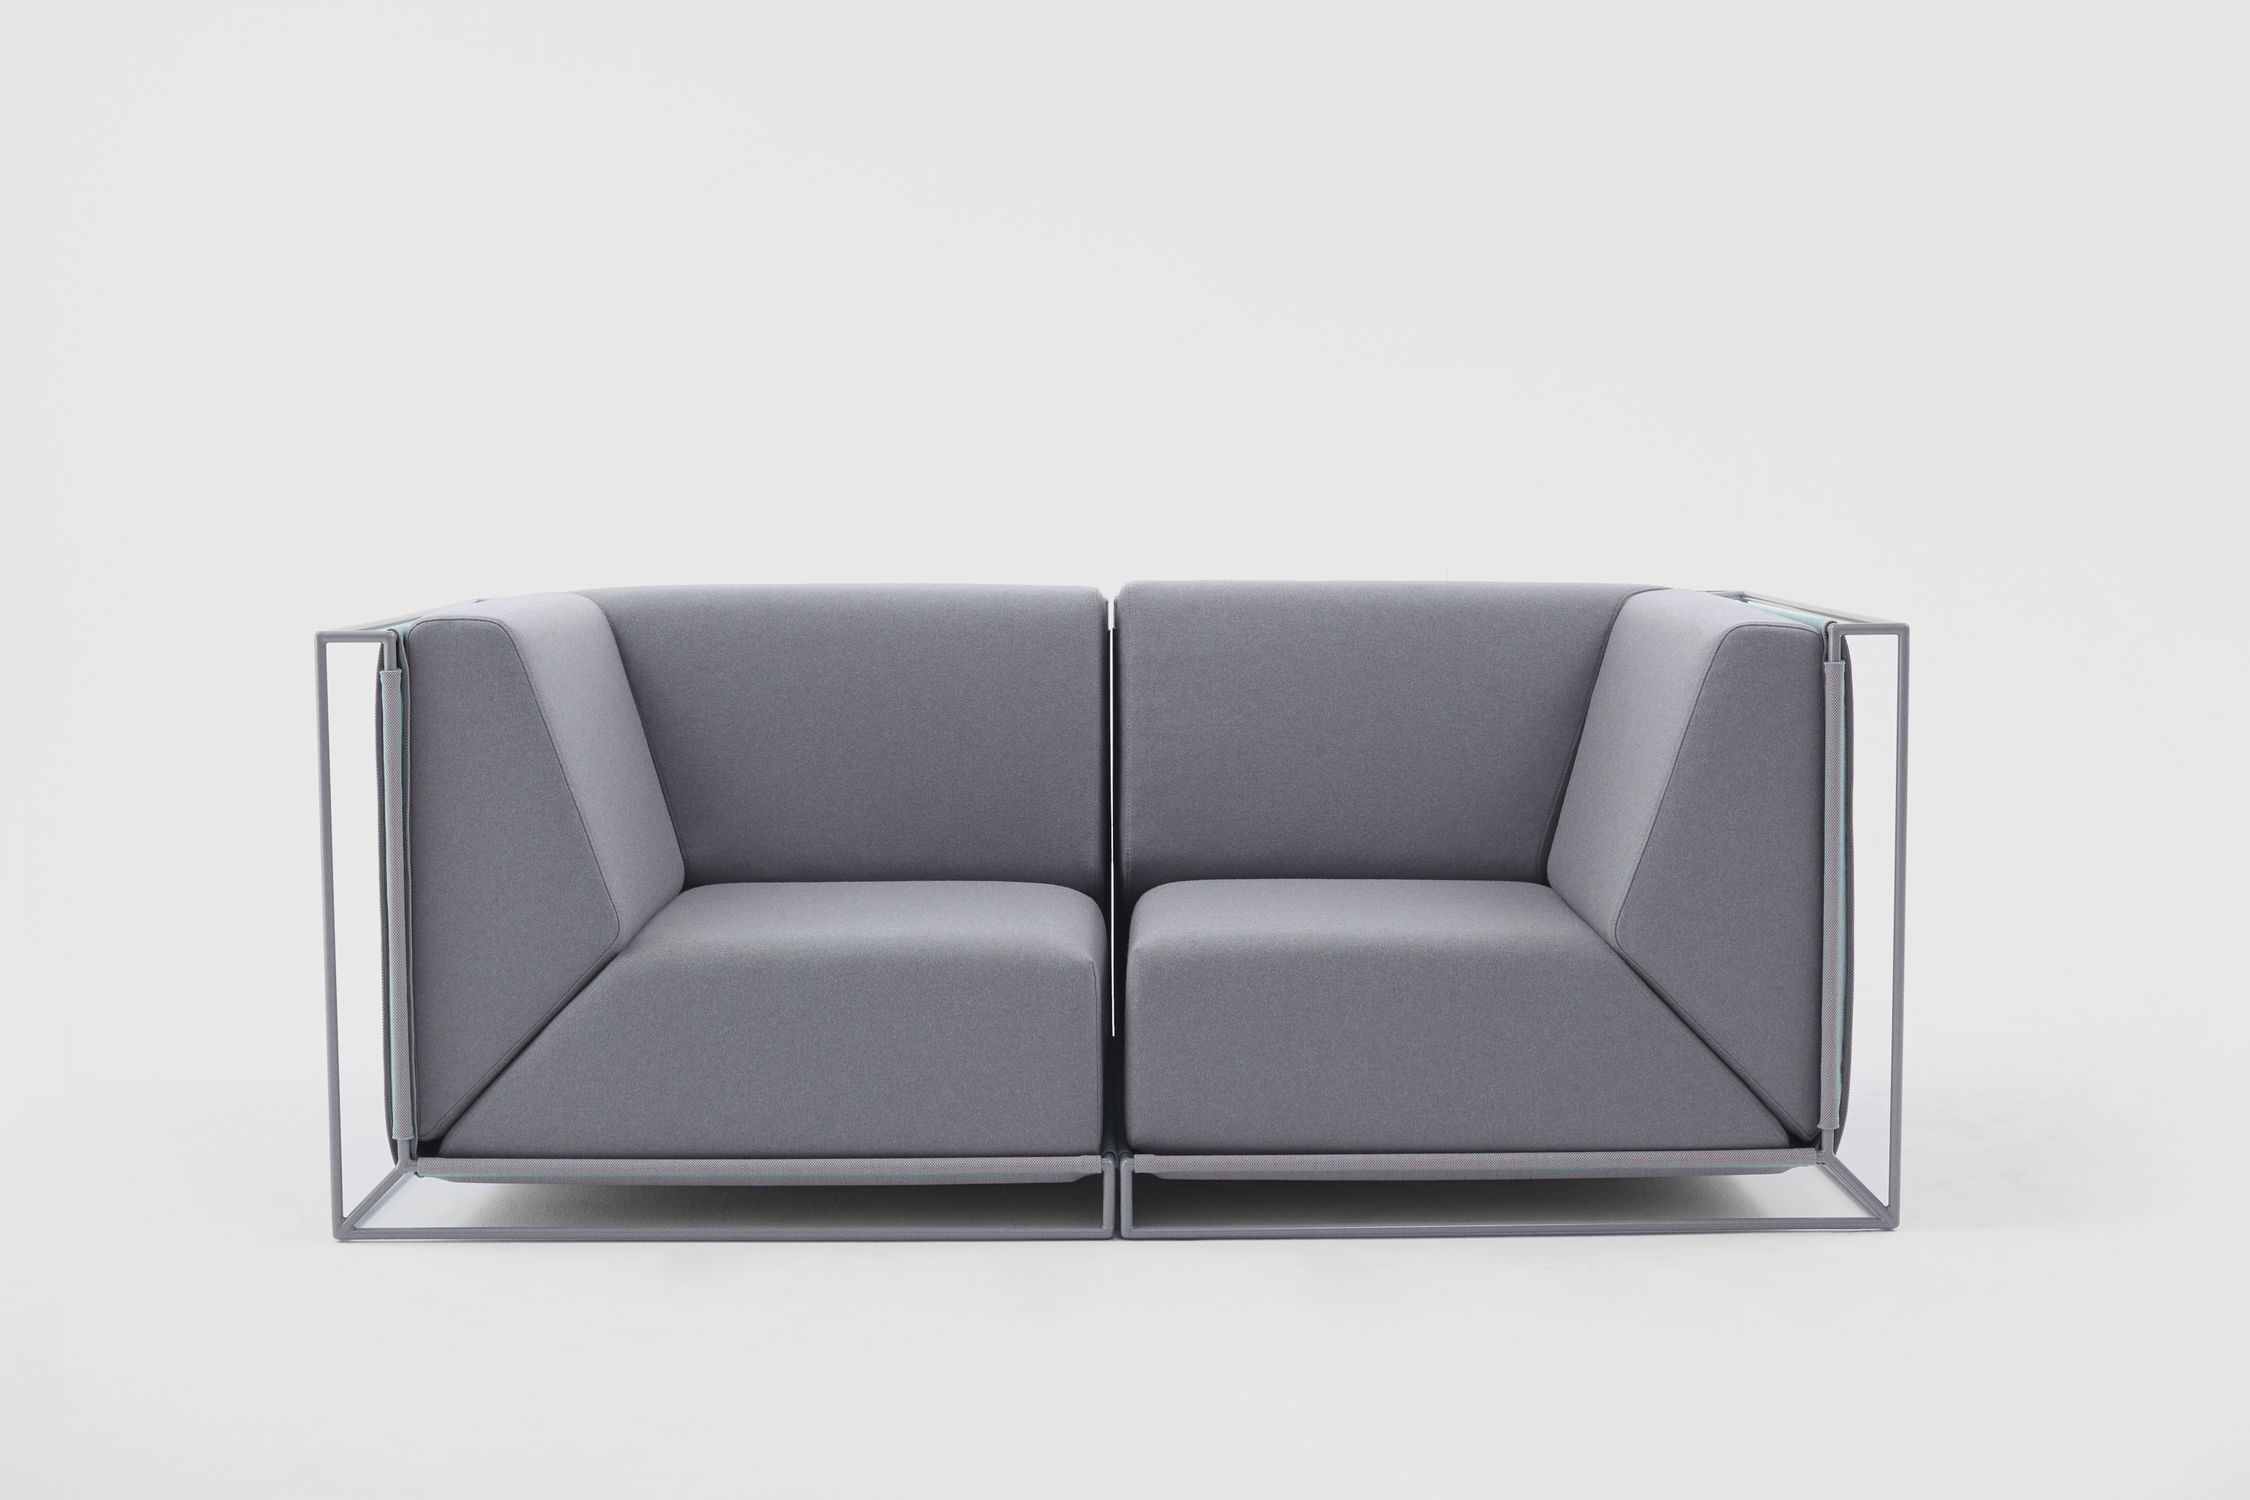 Amazing Modular Sofa / Contemporary / Fabric / By Philippe Nigro   FLOATING Photo